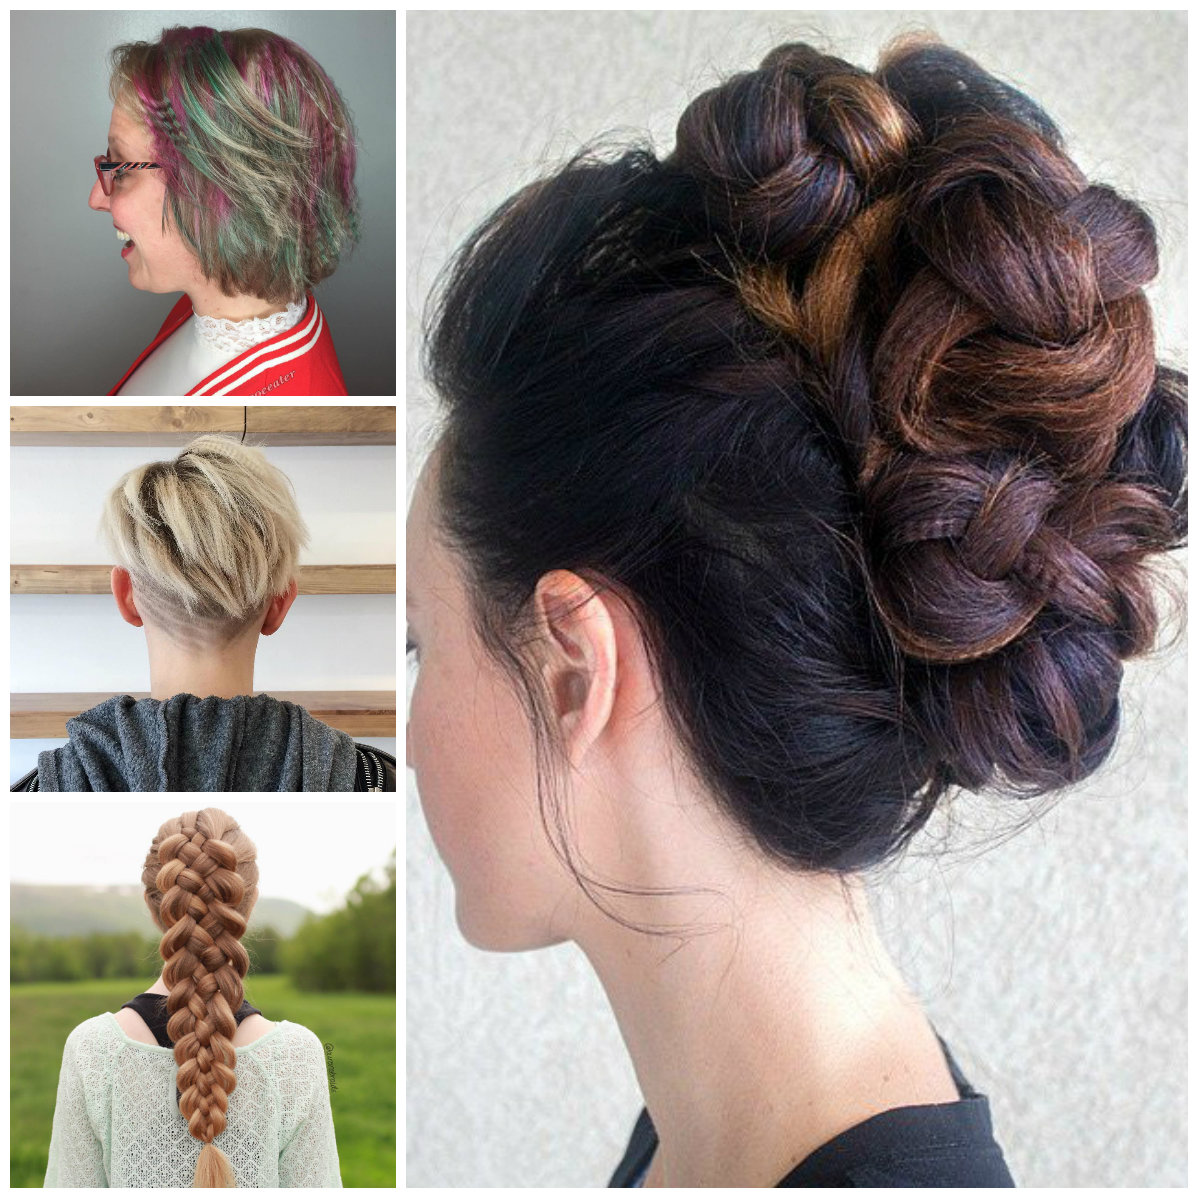 Crimped Hairstyle for Females for 2022